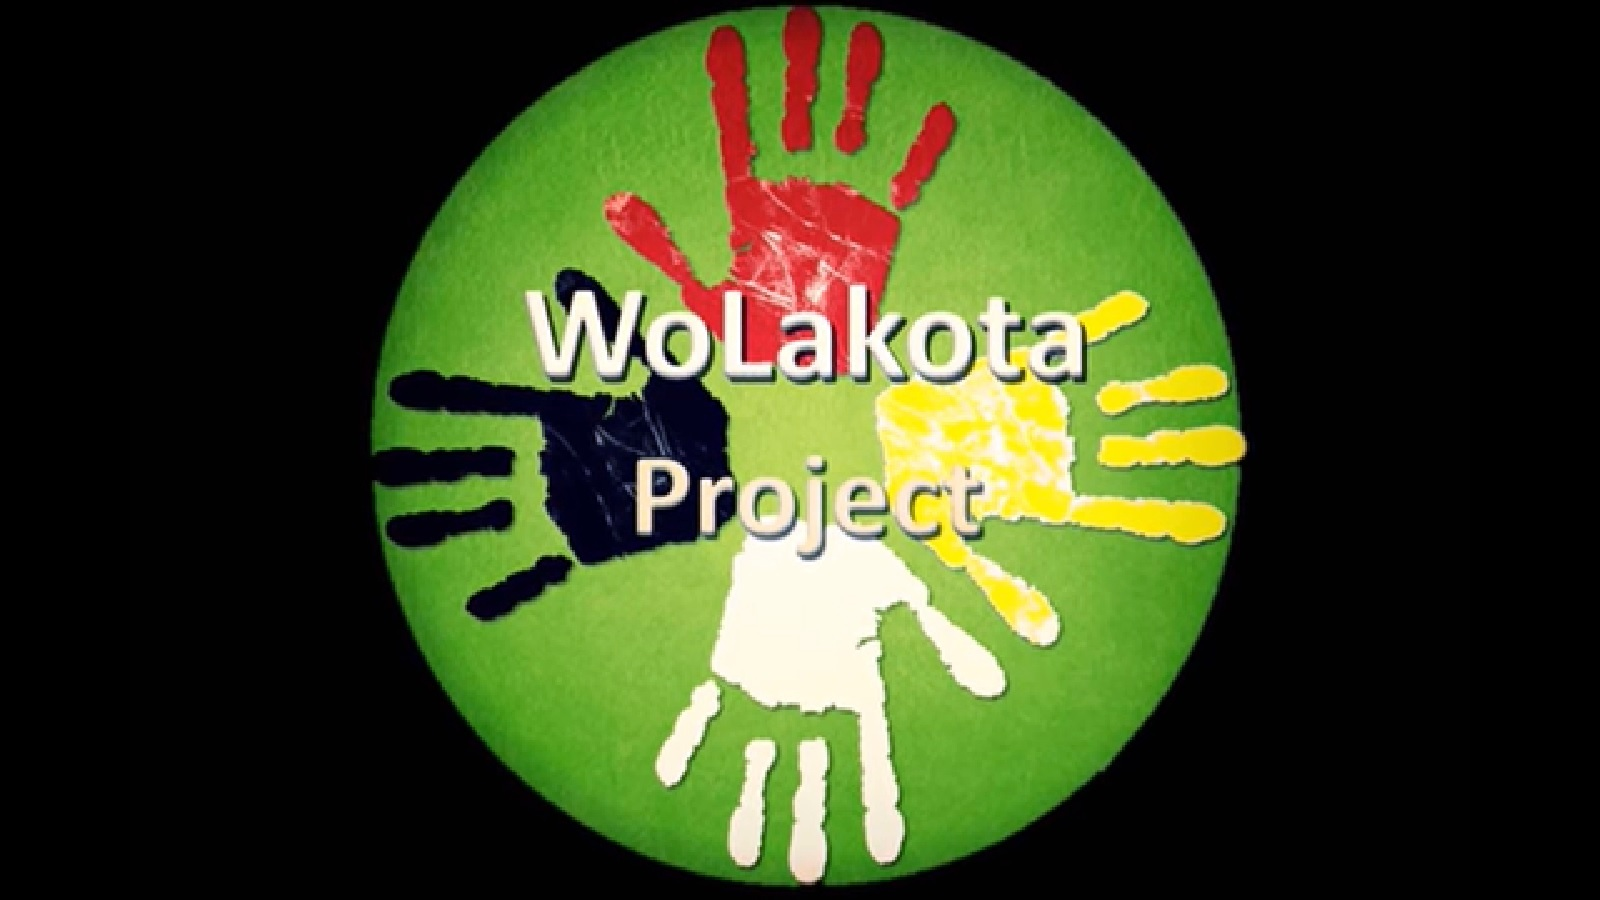 The WoLakota Project